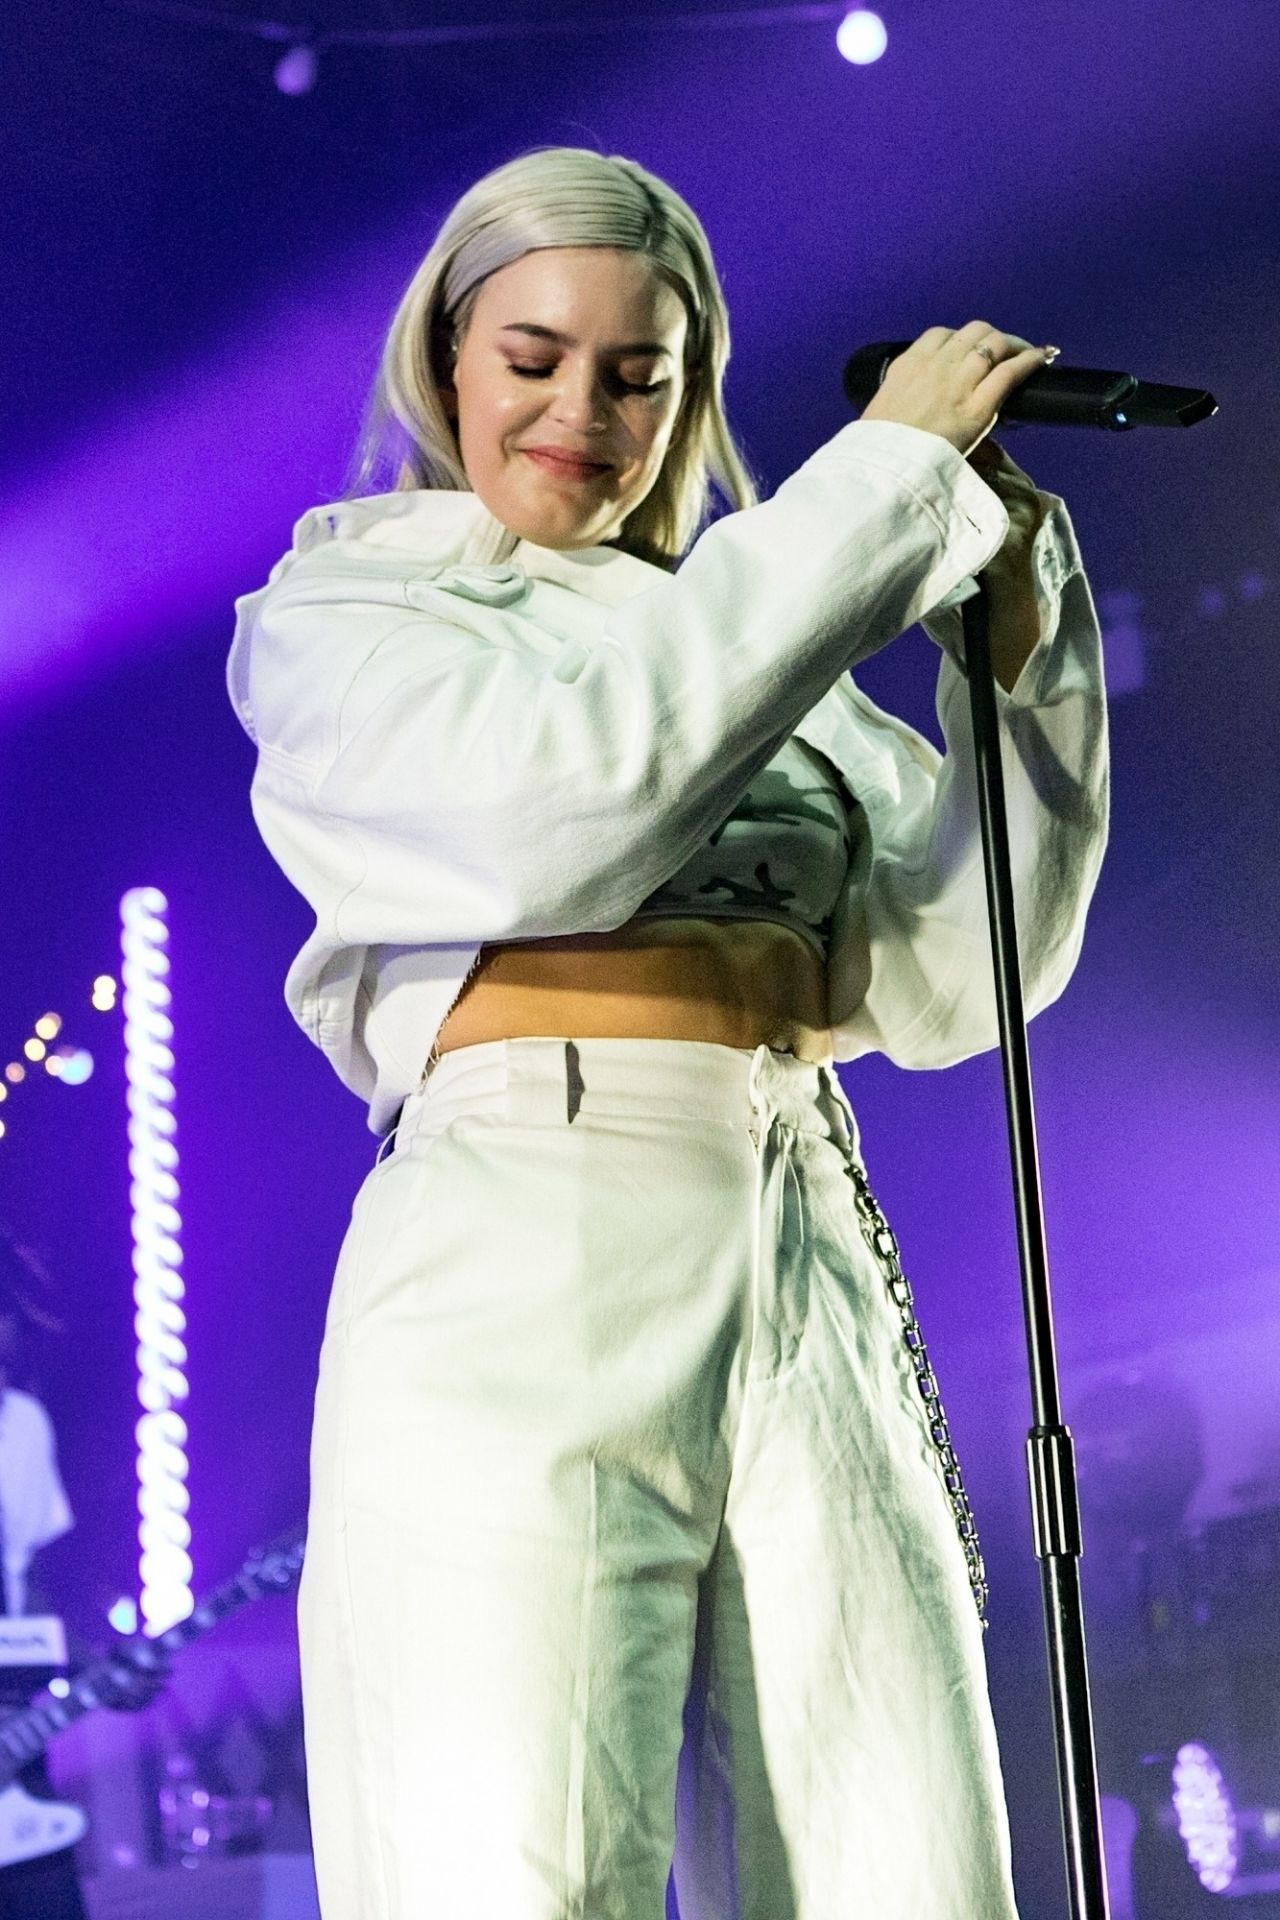 Anne Marie Performing Live At The O2 Institute Birmingham